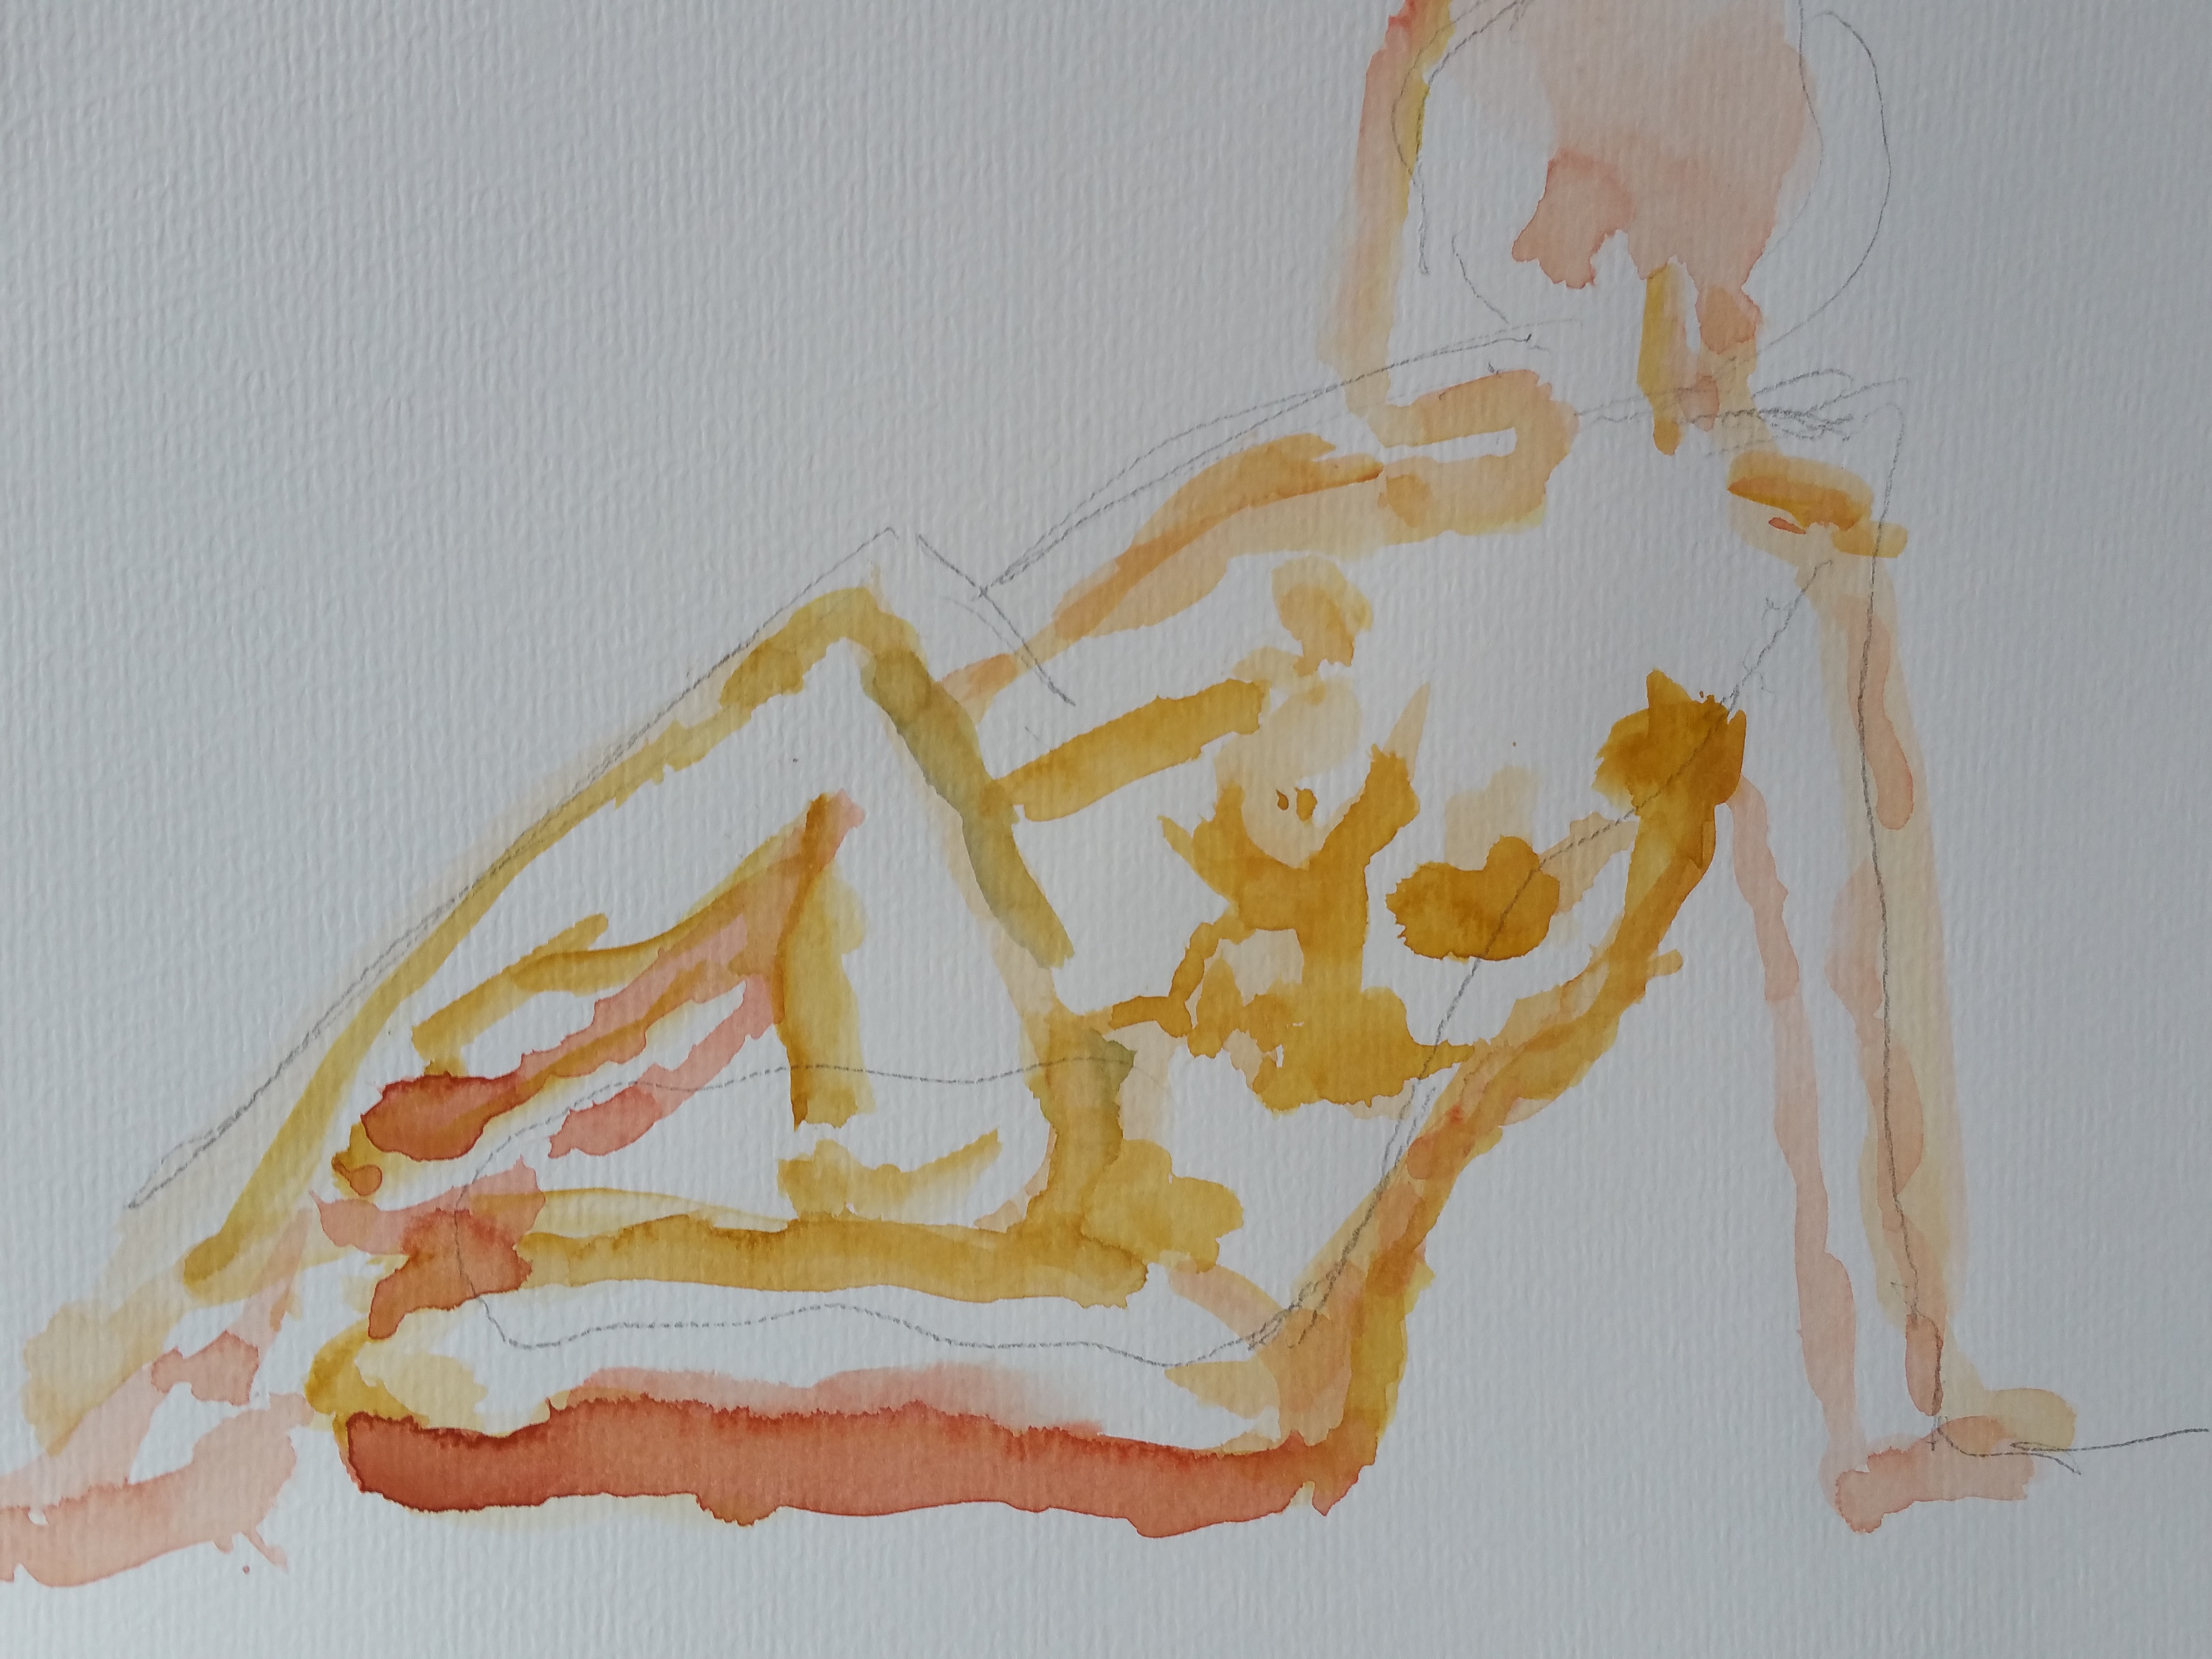 Esquisse aquarelle jaune et orange poses assise  cours de dessin